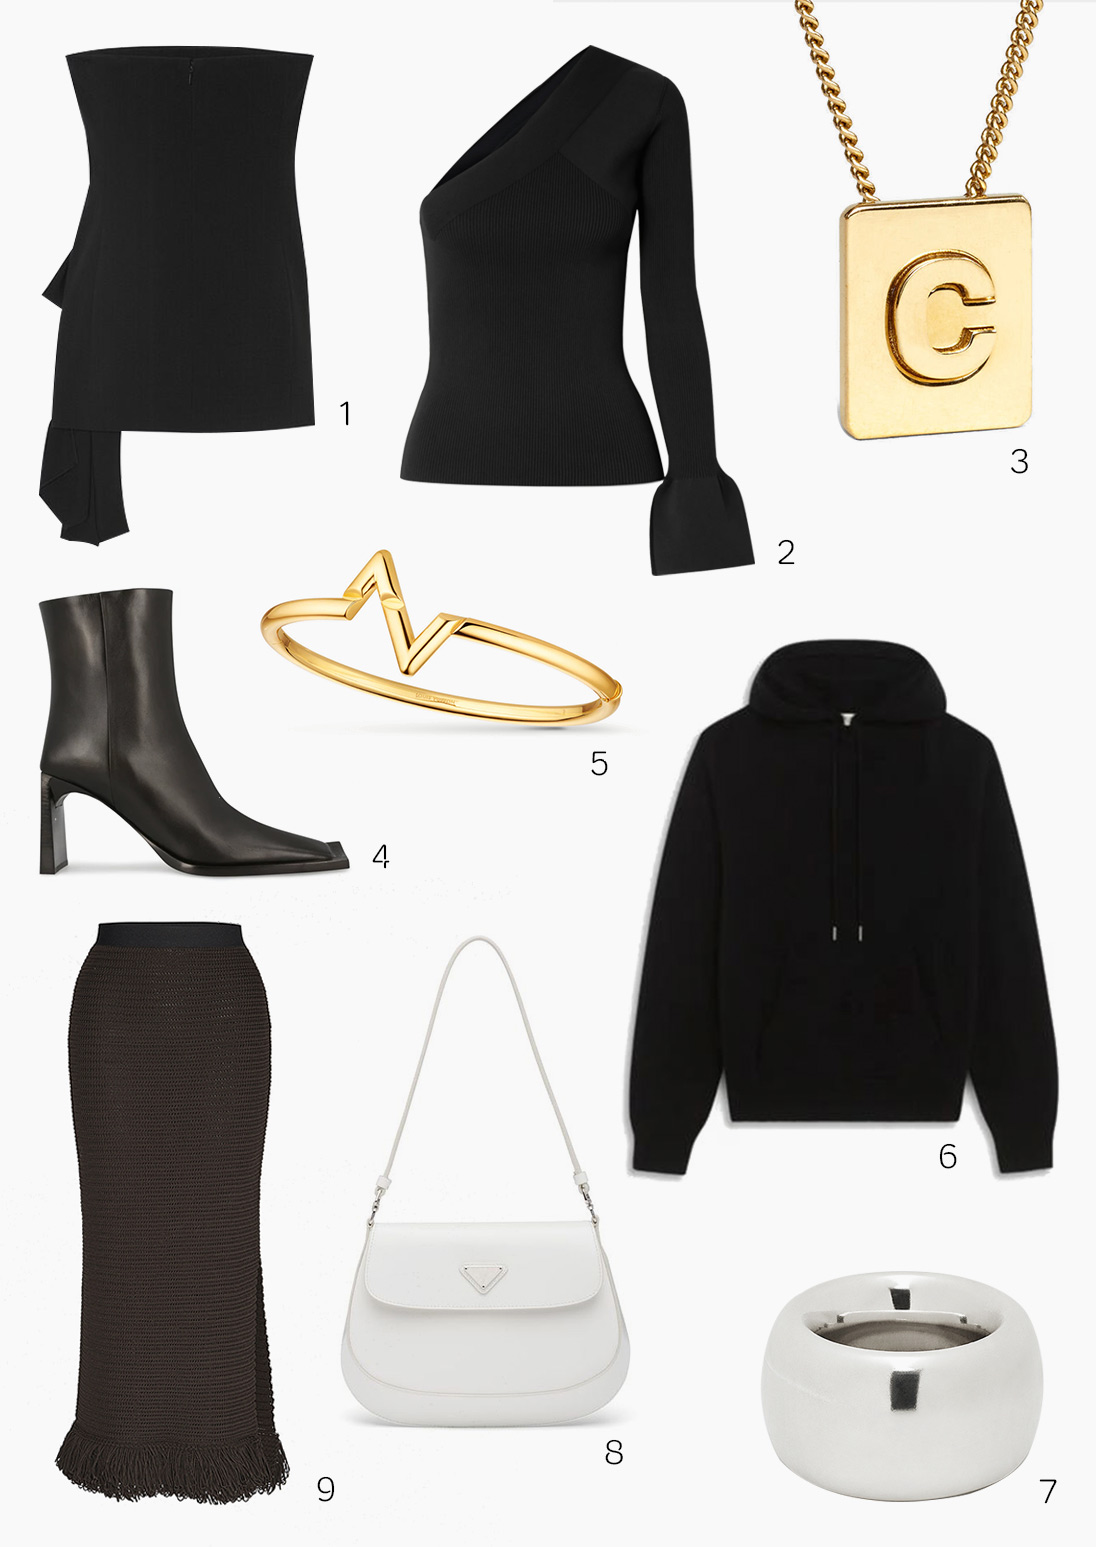 Fashion Blogger Cindy Ko's pick of timeless staples